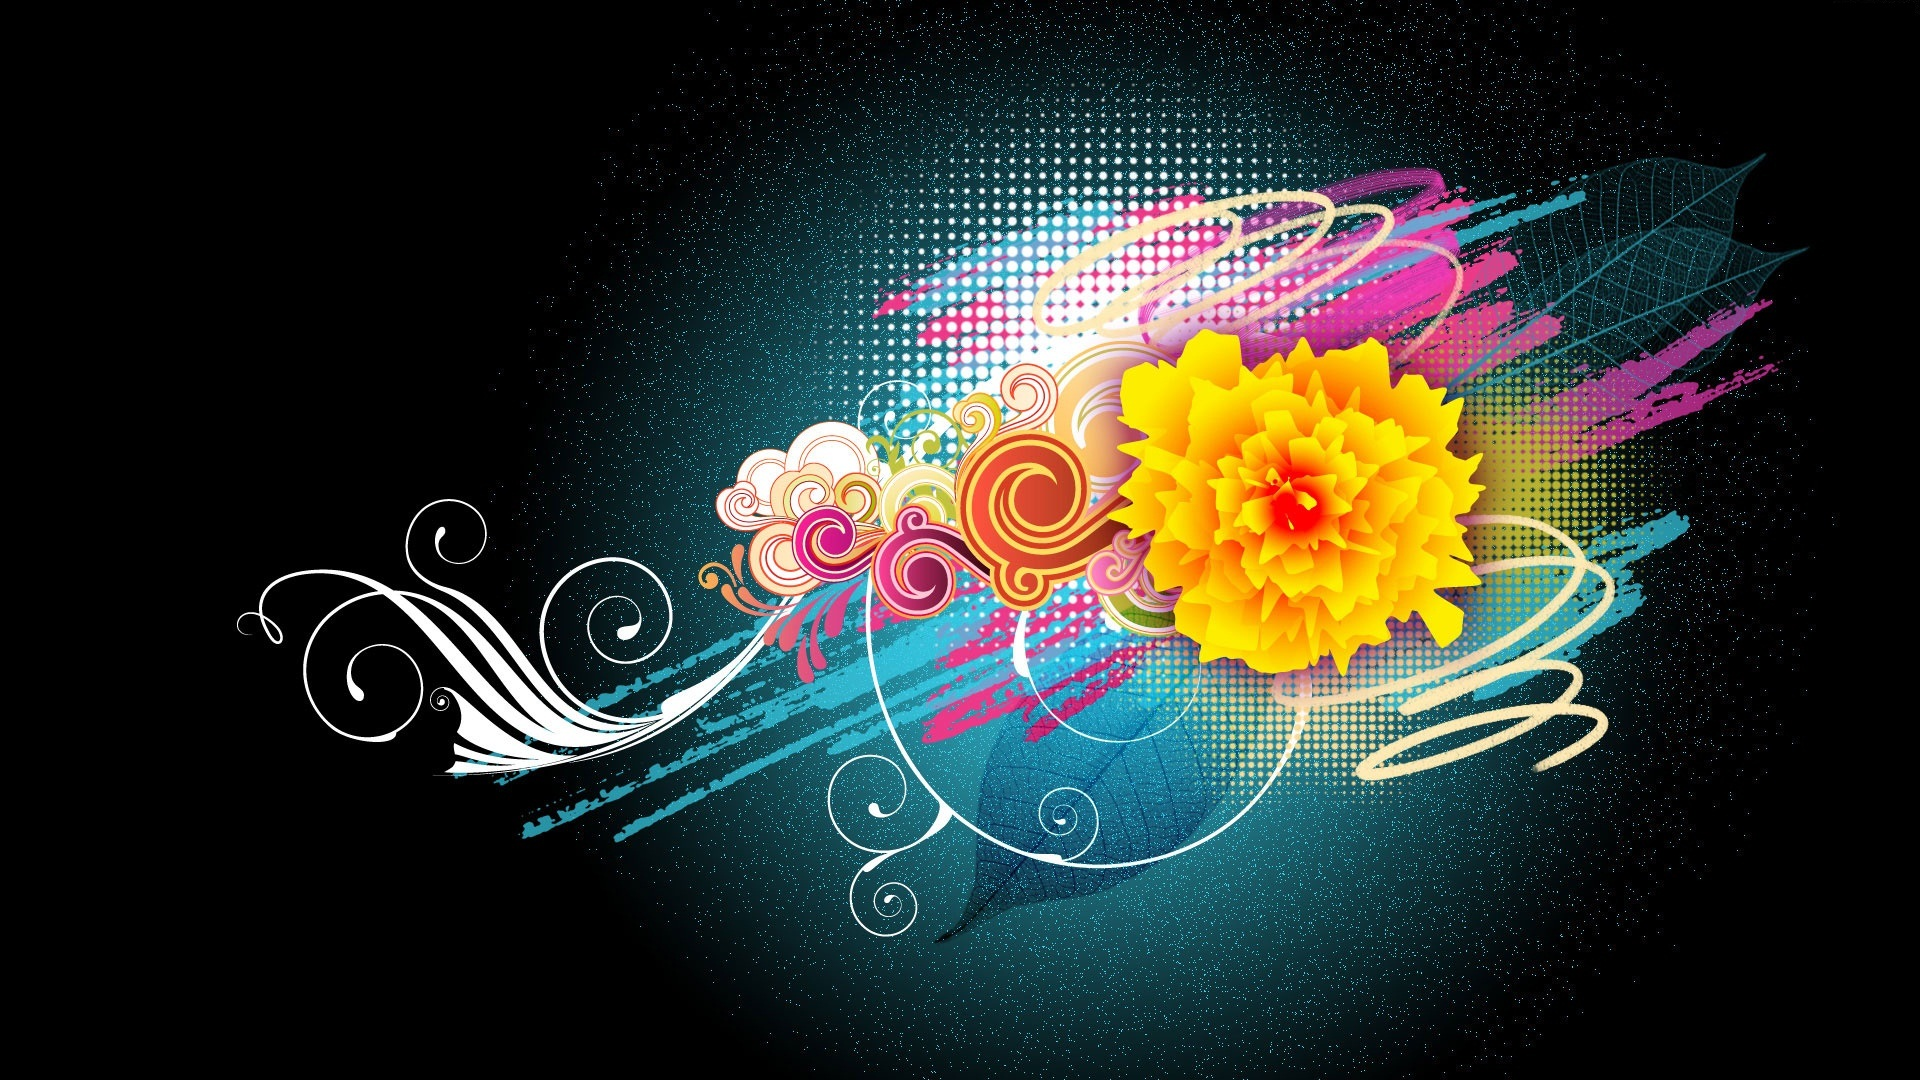 Free 43 Colorful Desktop Backgrounds - Technosamrat